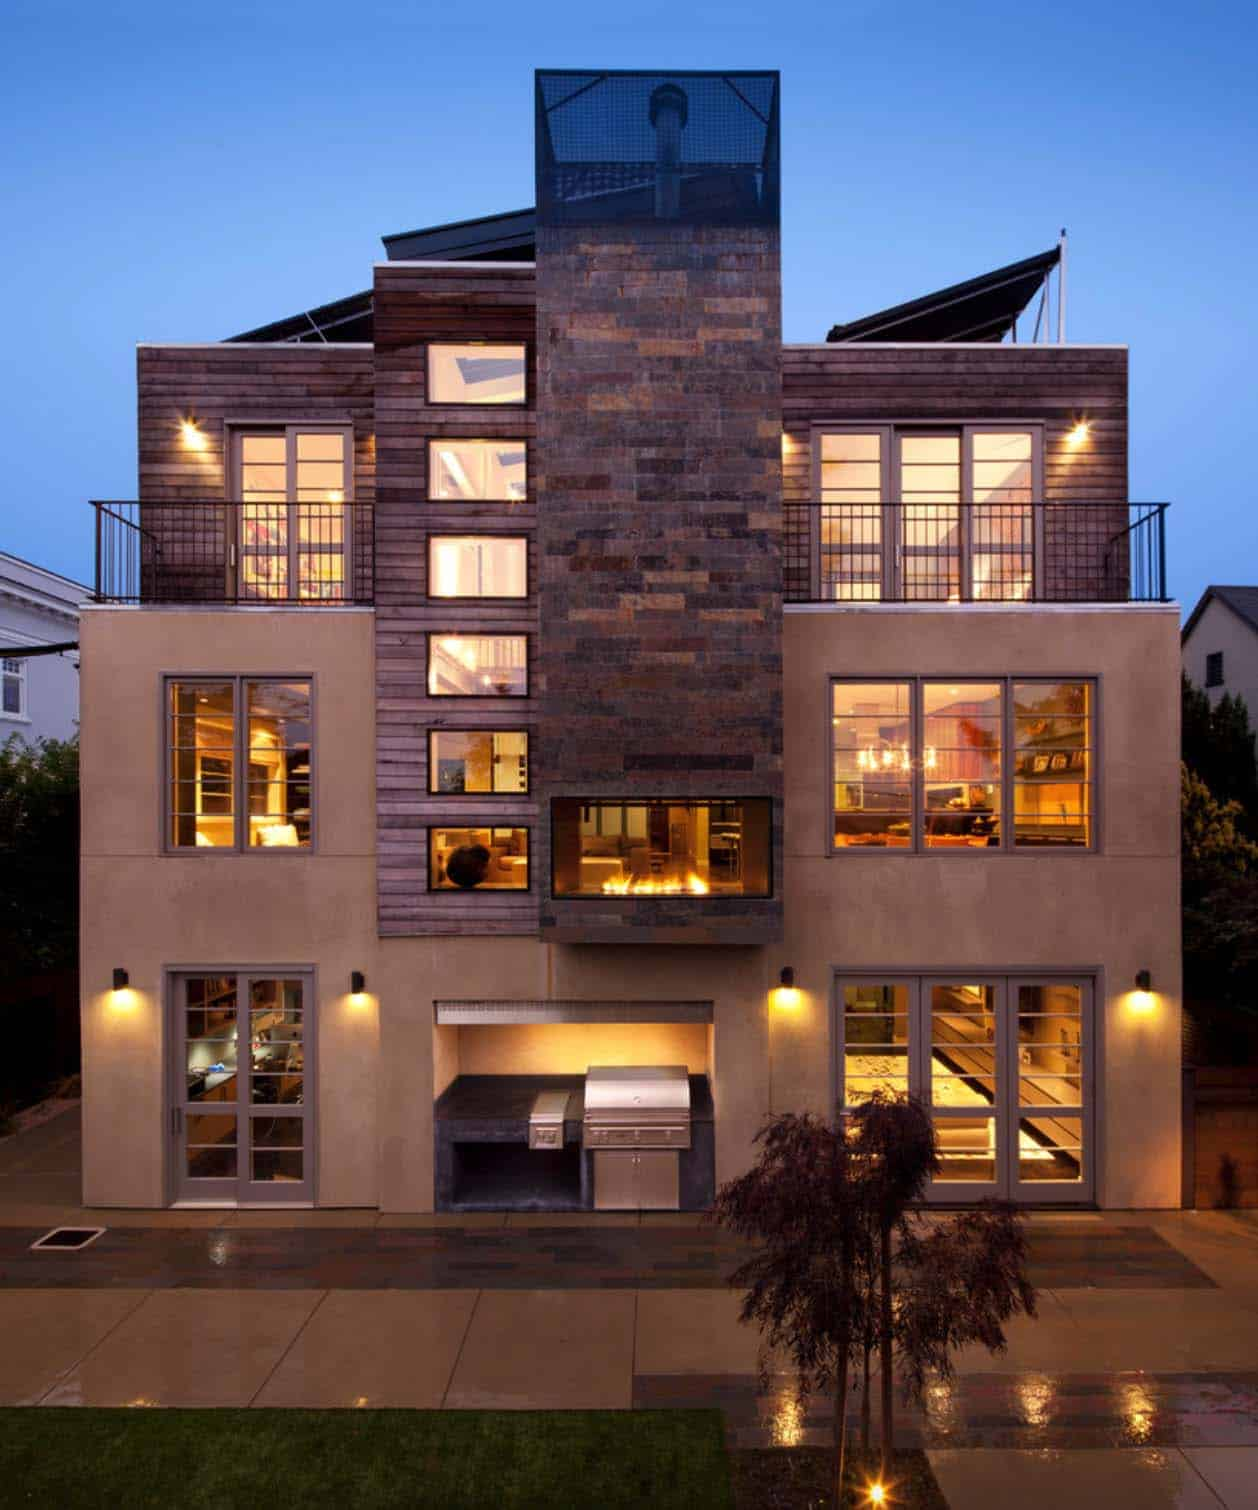 Modern Home Design Ideas Exterior: 1940s Mission-style House Gets Brilliant Transformation In